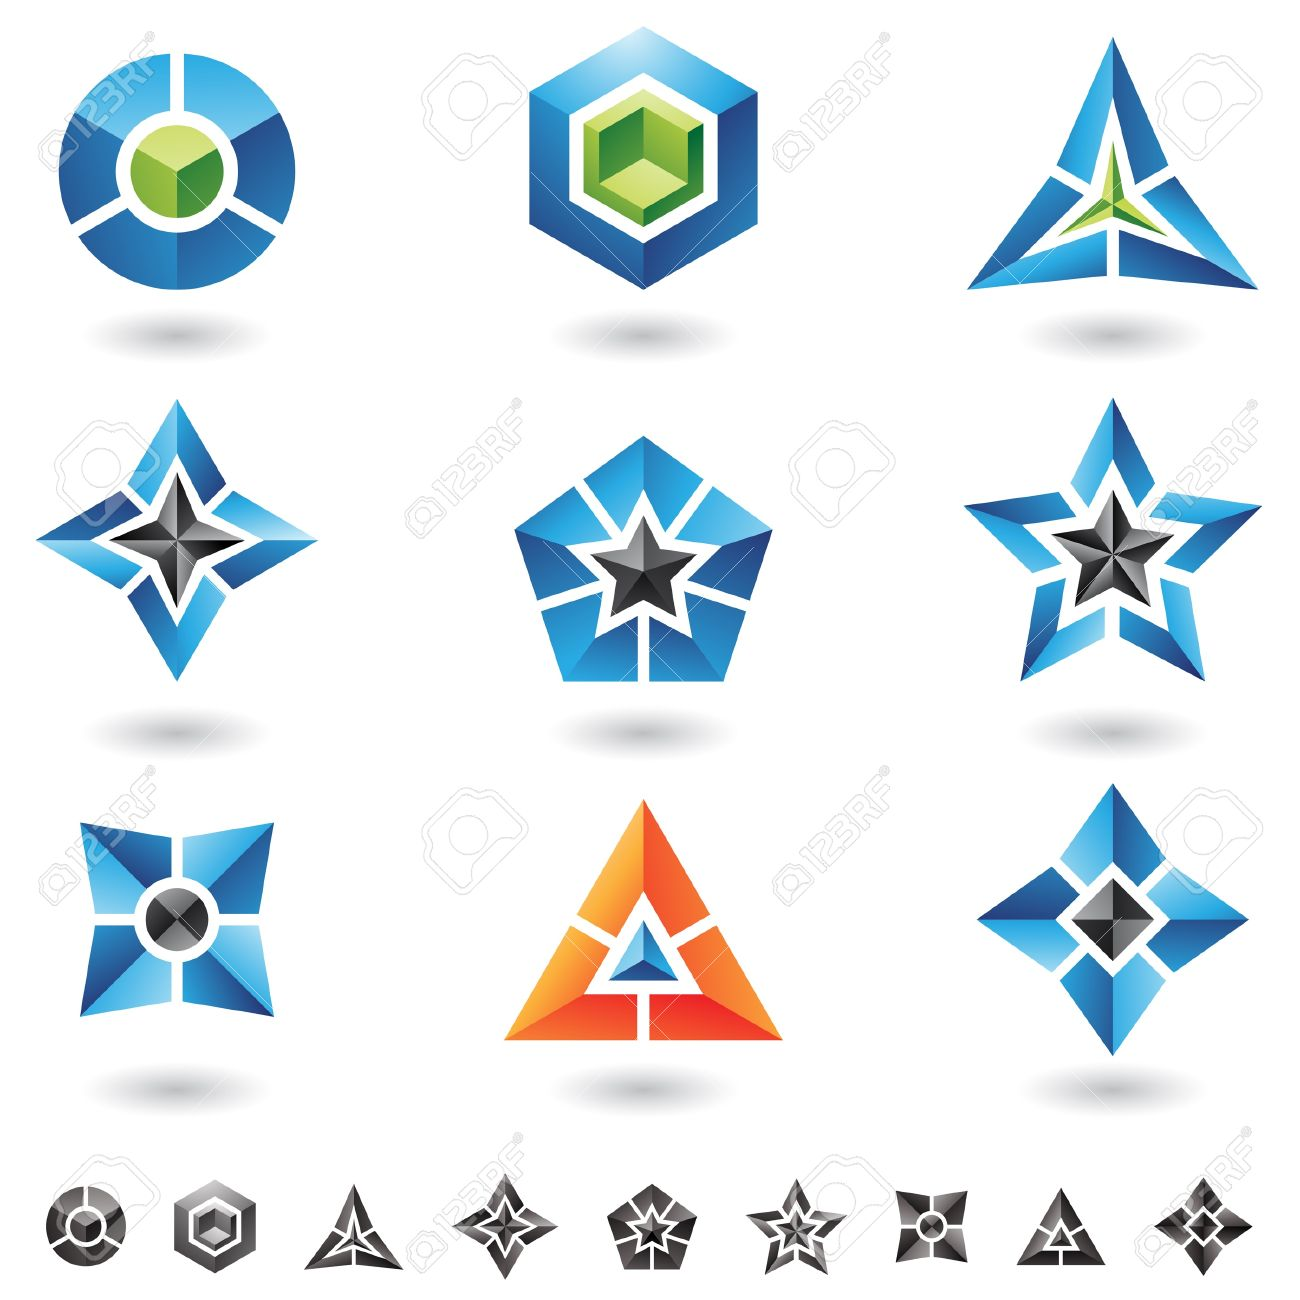 cubes, stars, pyramids and lots of 3d geometrical shapes - 14993148